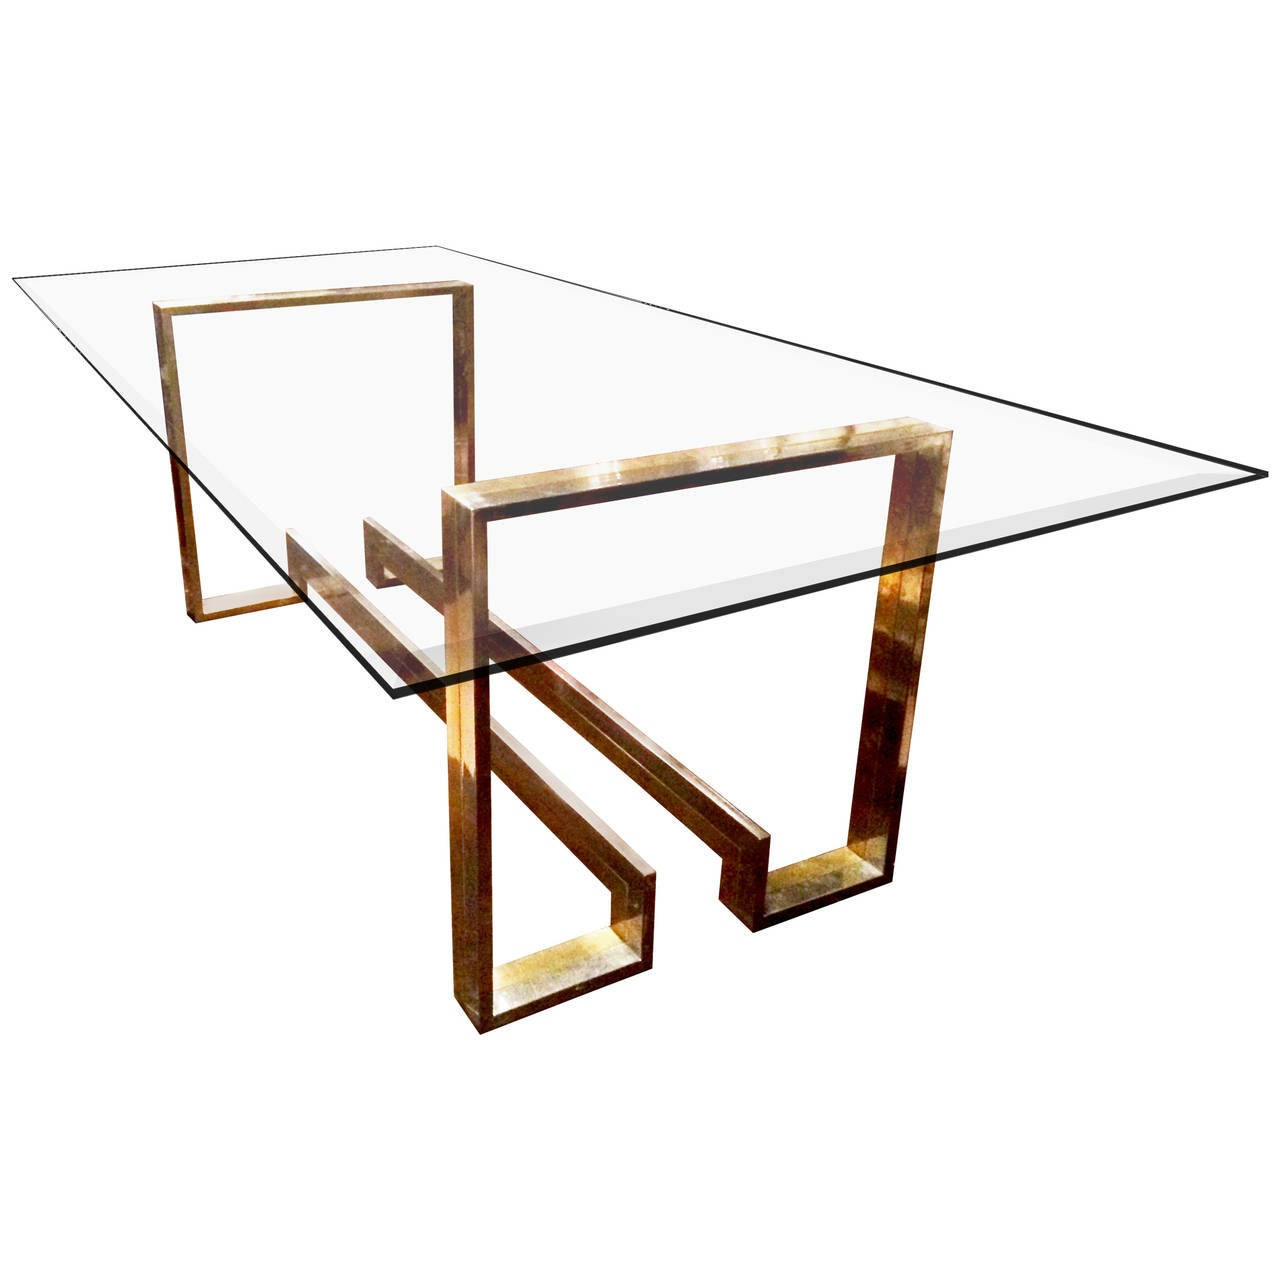 Metal and glass dining table at 1stdibs for Metal glass dining table